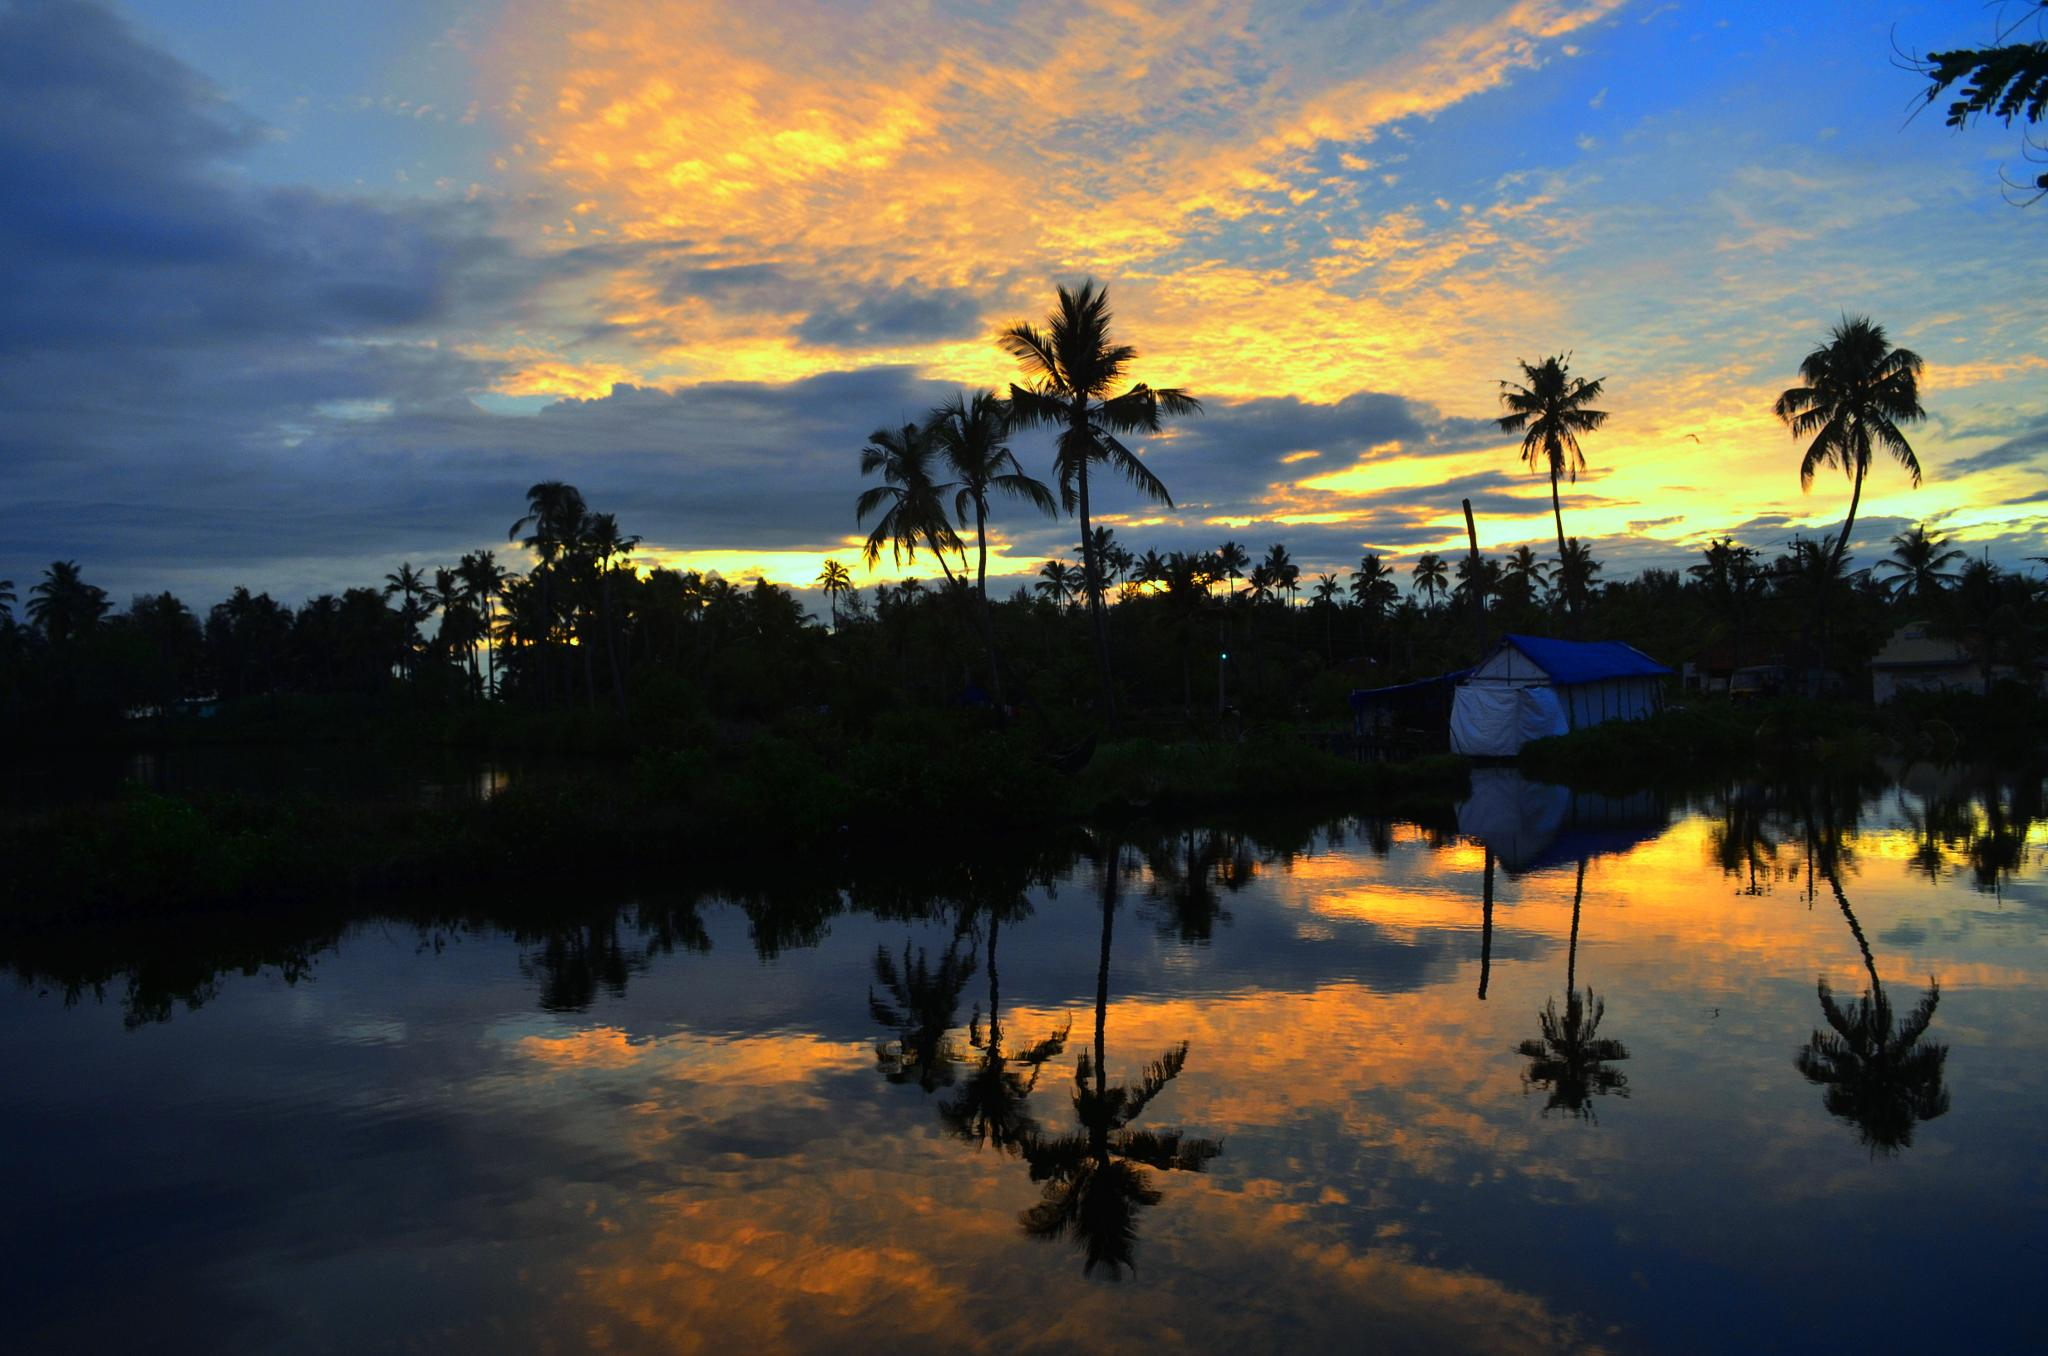 backwaters by Syam M S